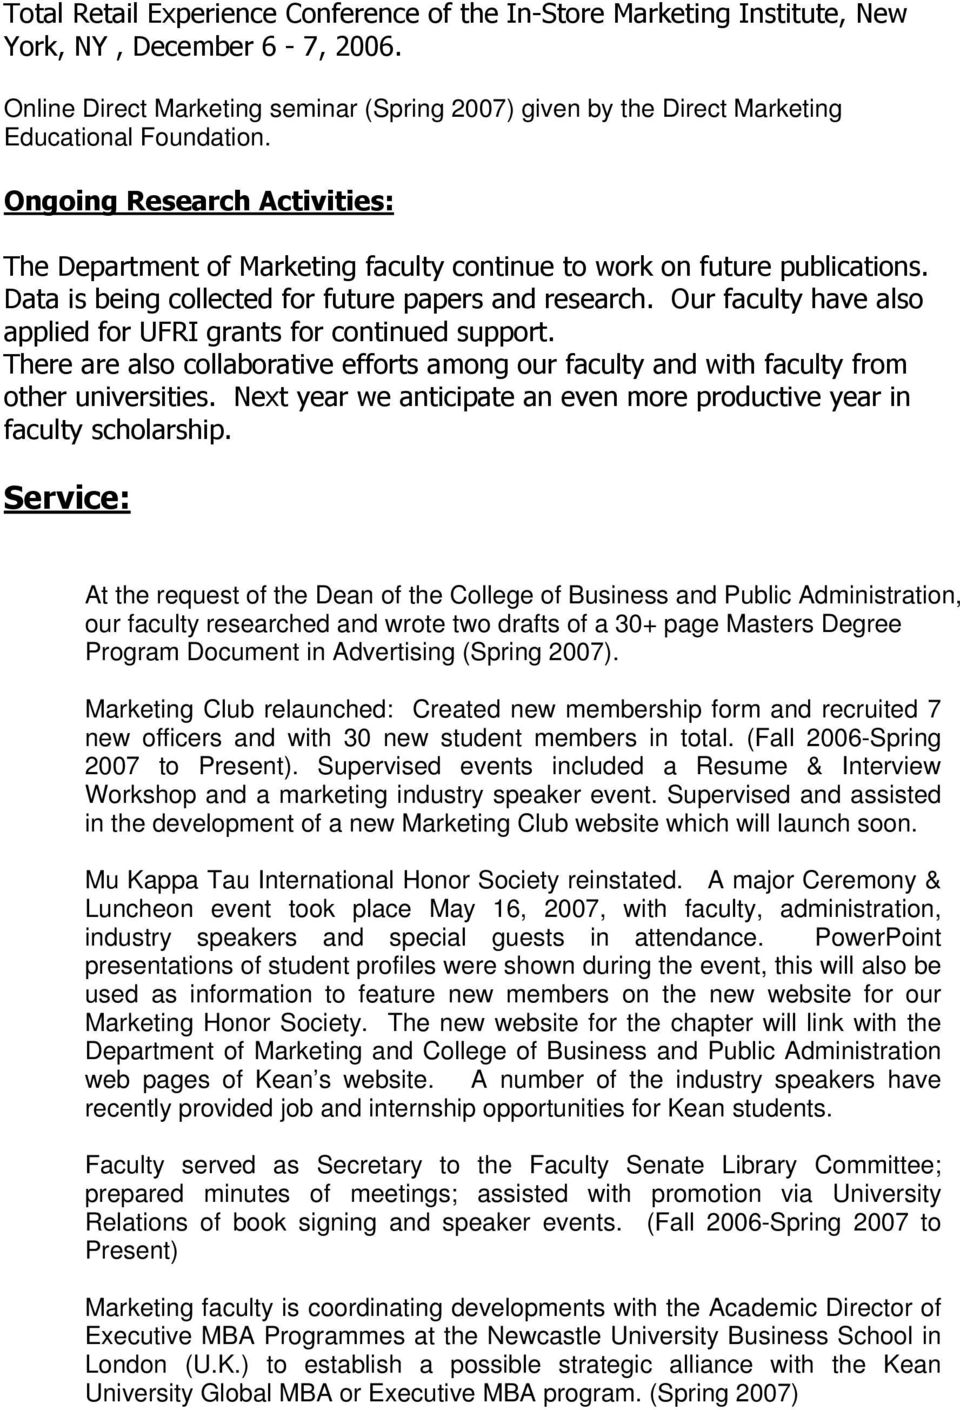 2007). Marketing Club relaunched: Created new membership form and recruited 7 new officers and with 30 new student members in total. (Fall 2006-Spring 2007 to Present).